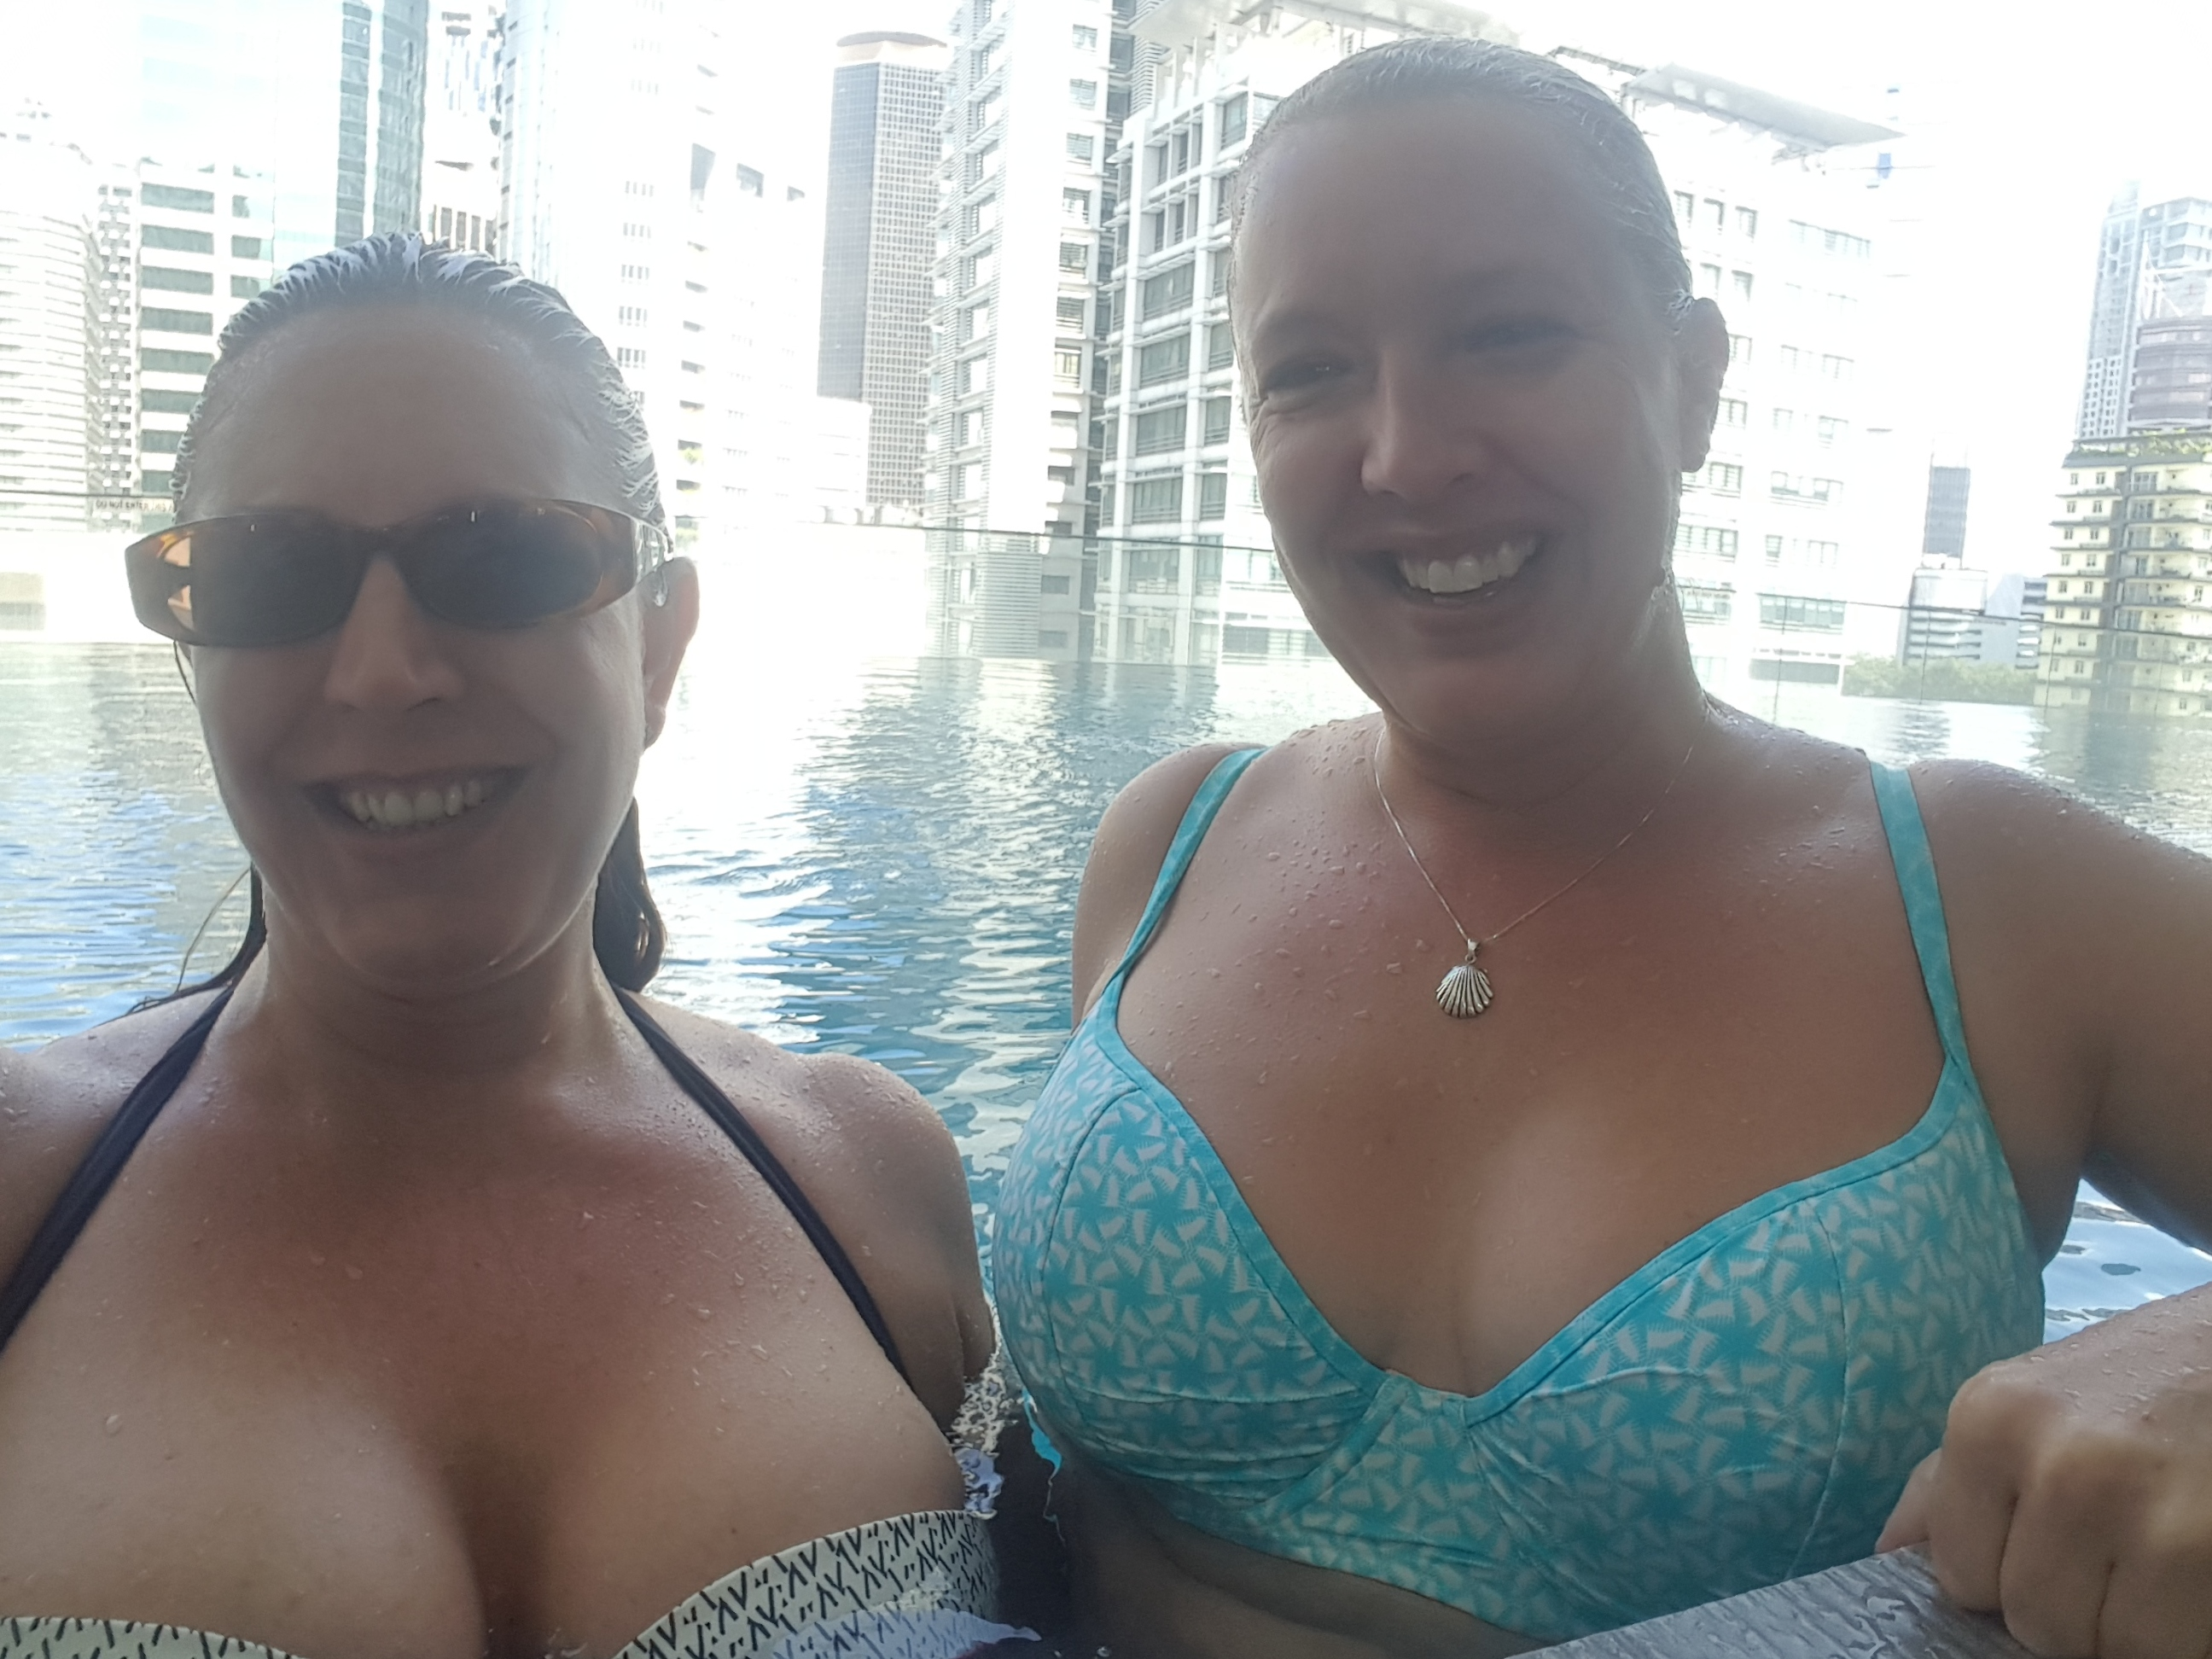 Lucy and I in bikinis in the pool, smiling